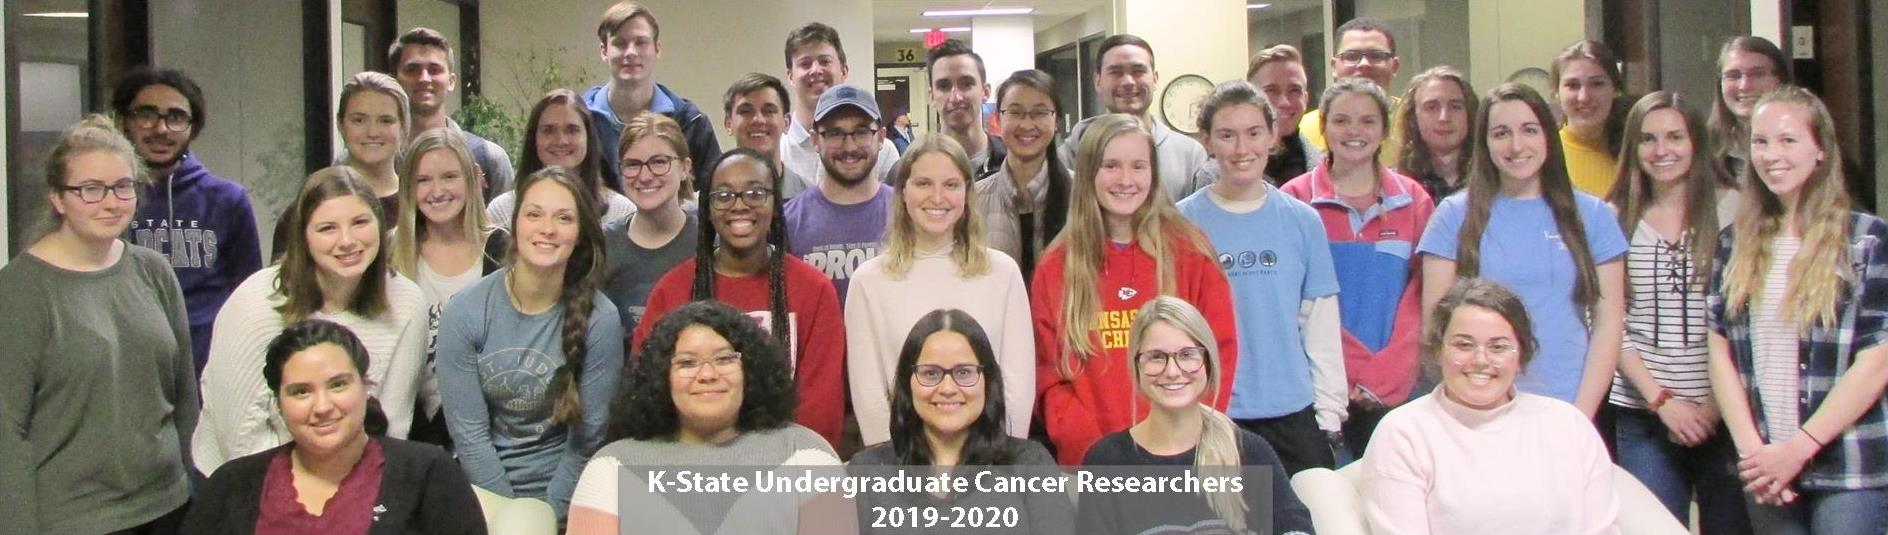 Cancer Research Awardees 2019-2020